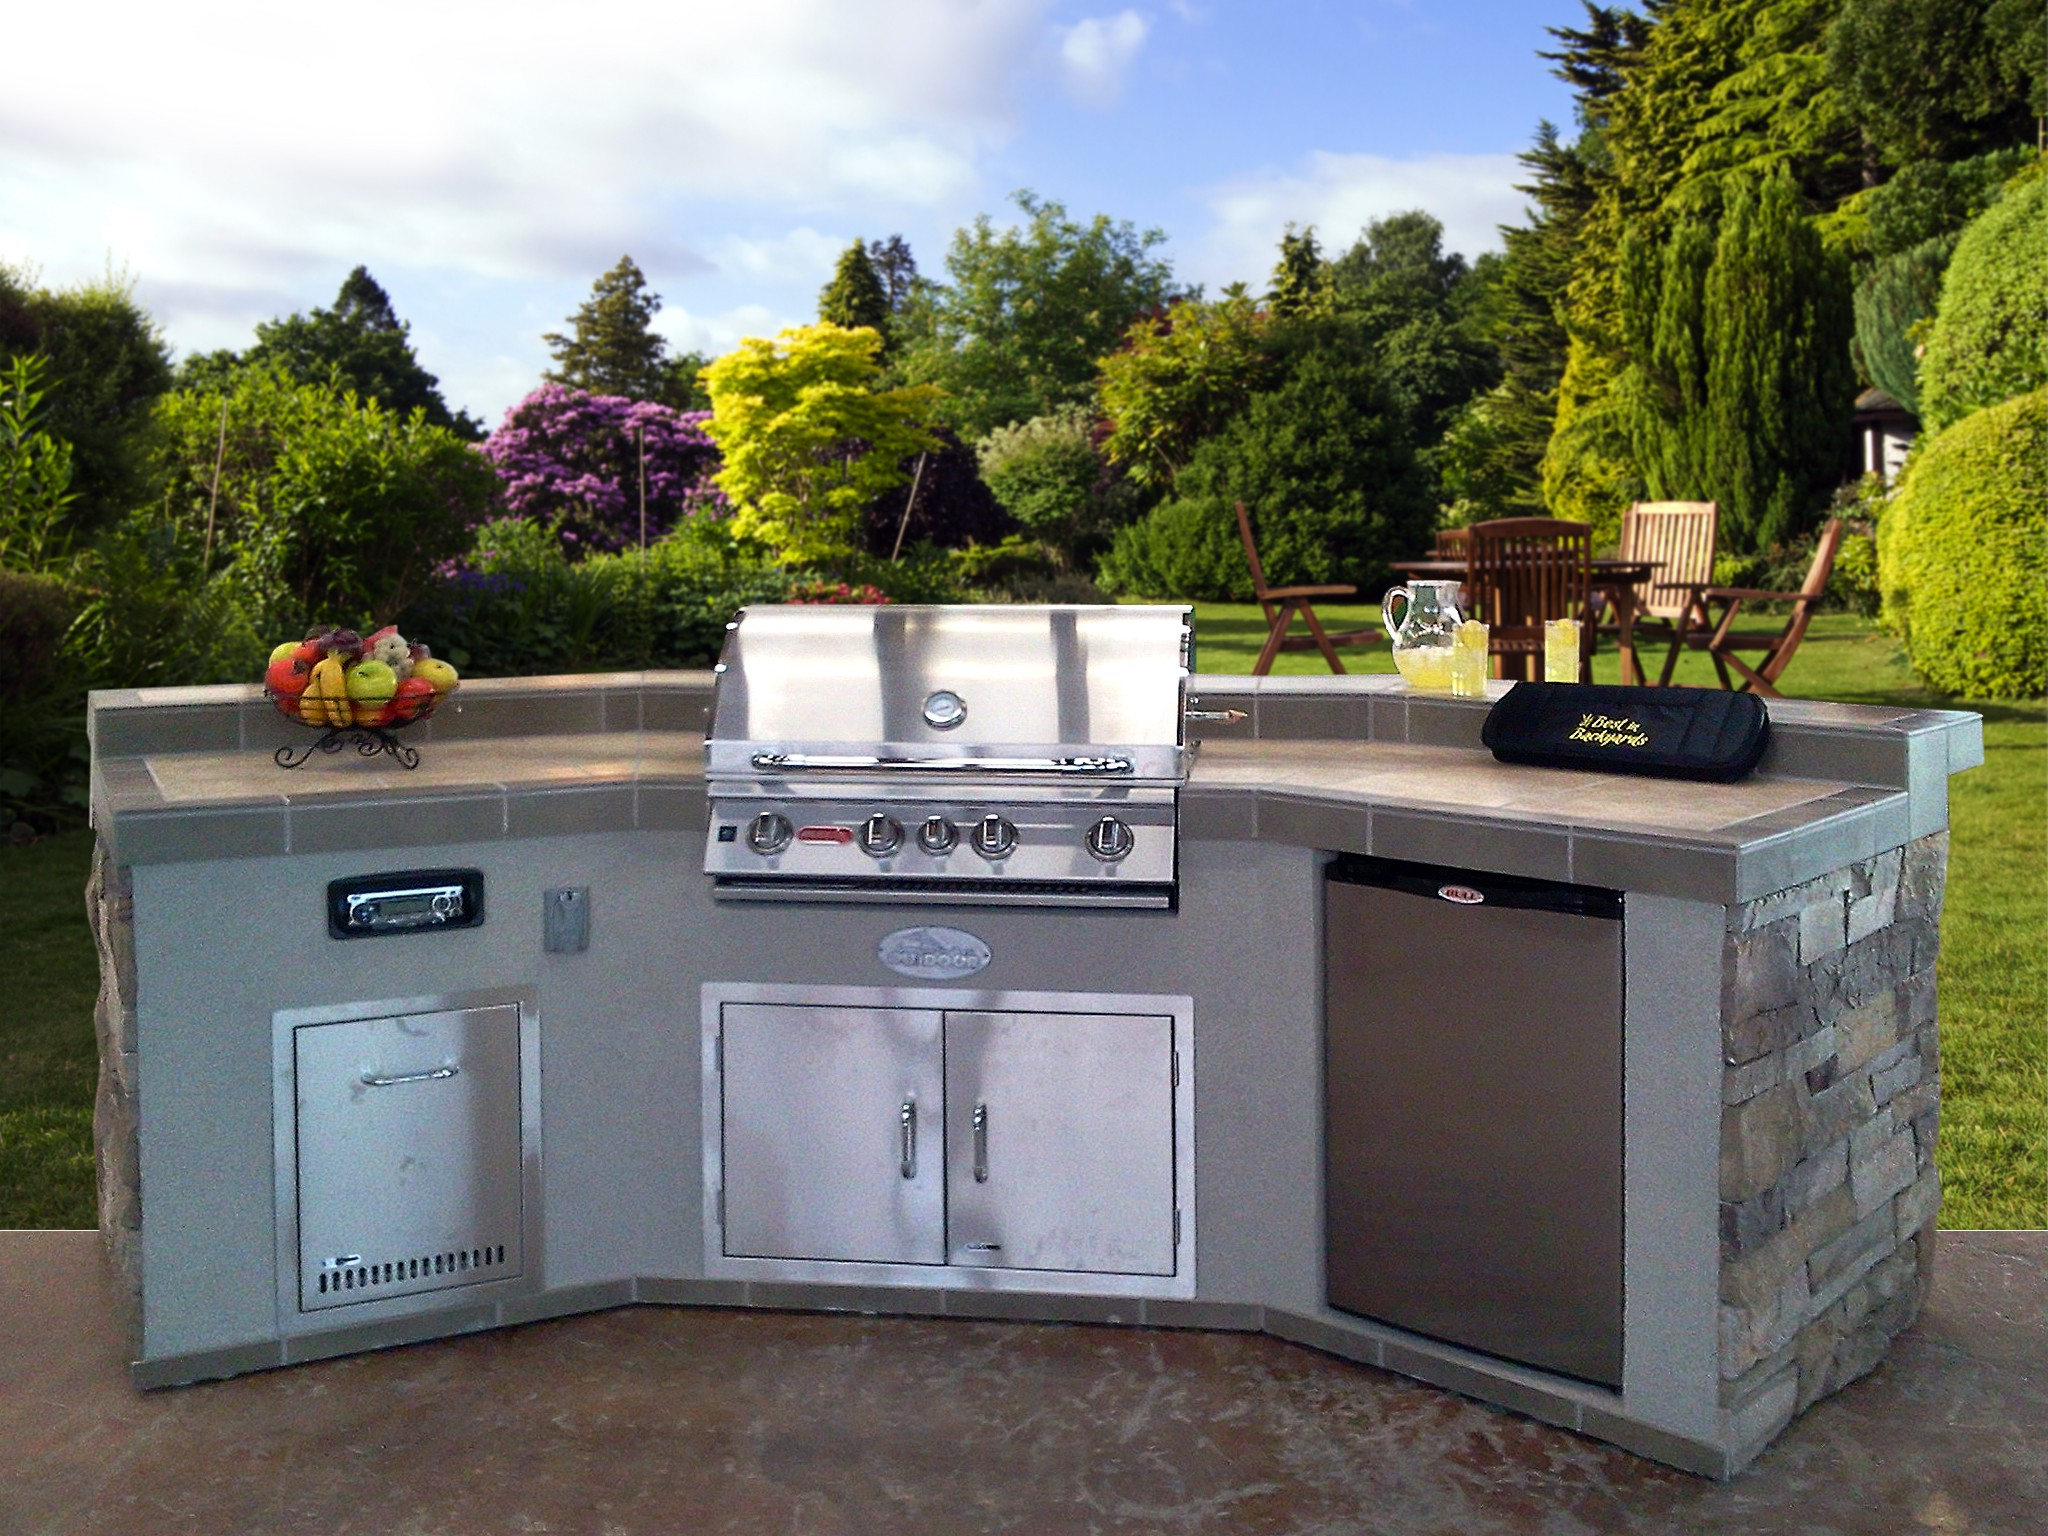 Best in backyards announces tips for increasing property value for Outdoor kitchen units uk